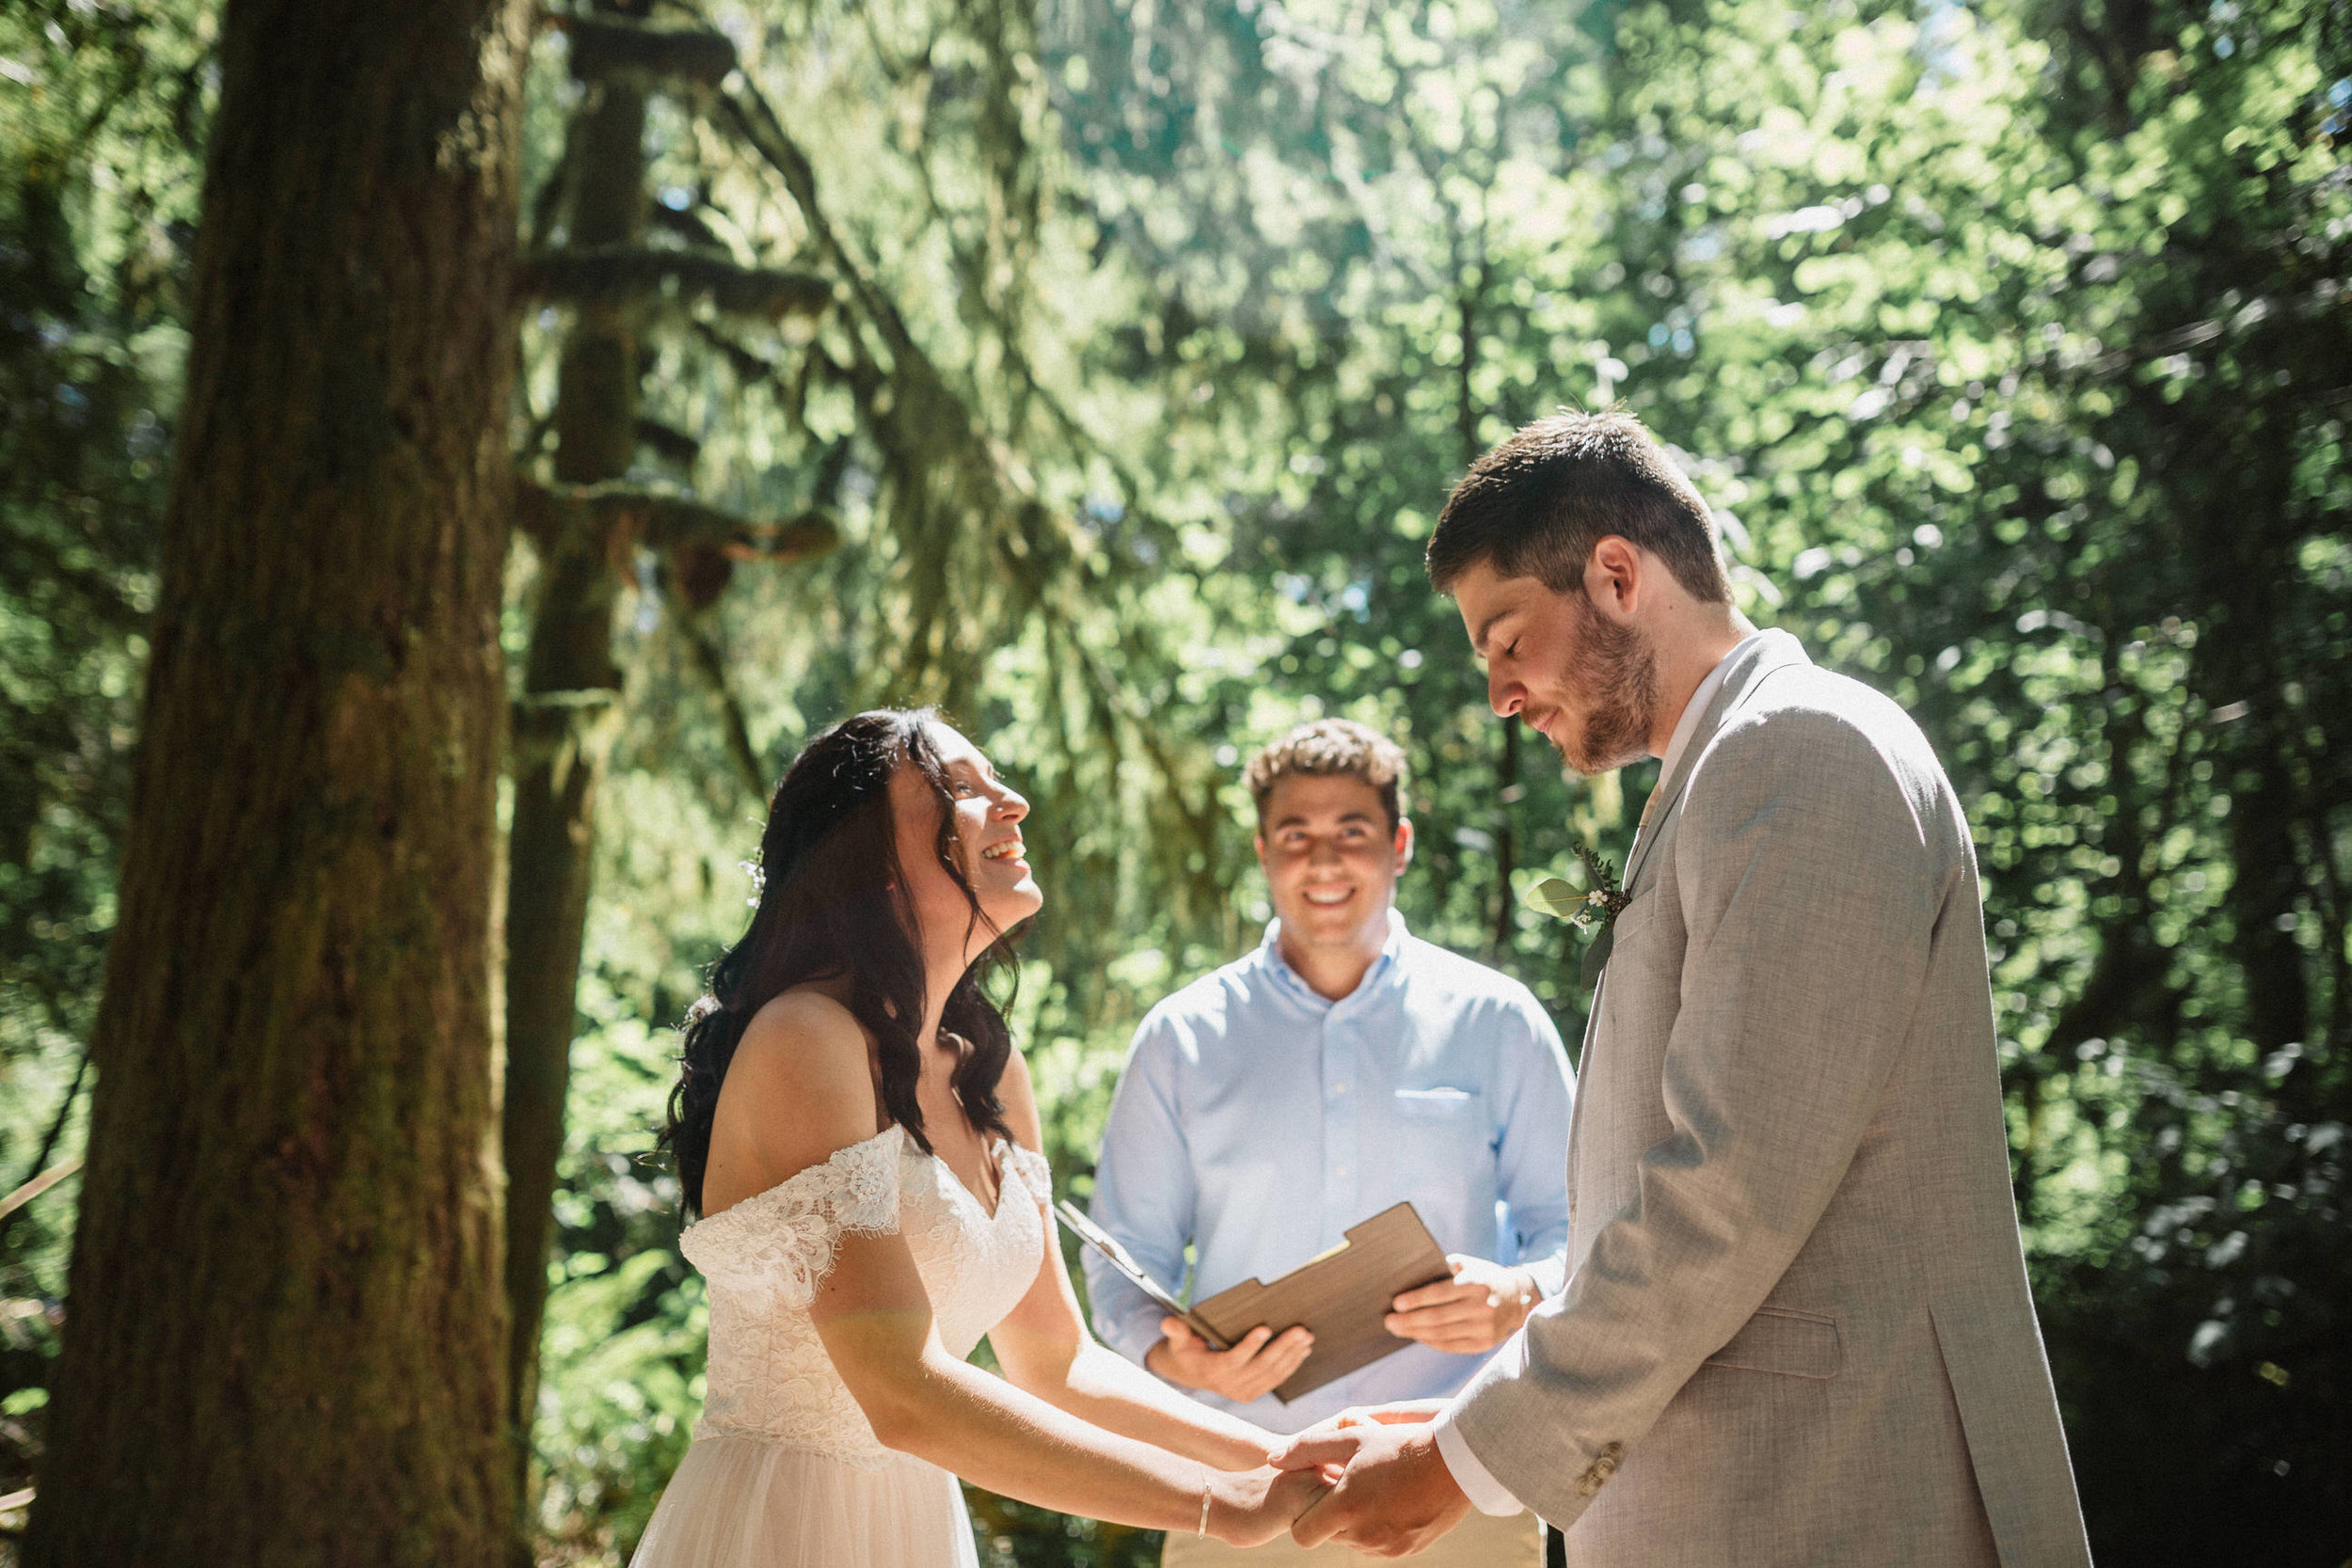 MT Hood Wildwood elopement wedding oregon portland photography0022.JPG